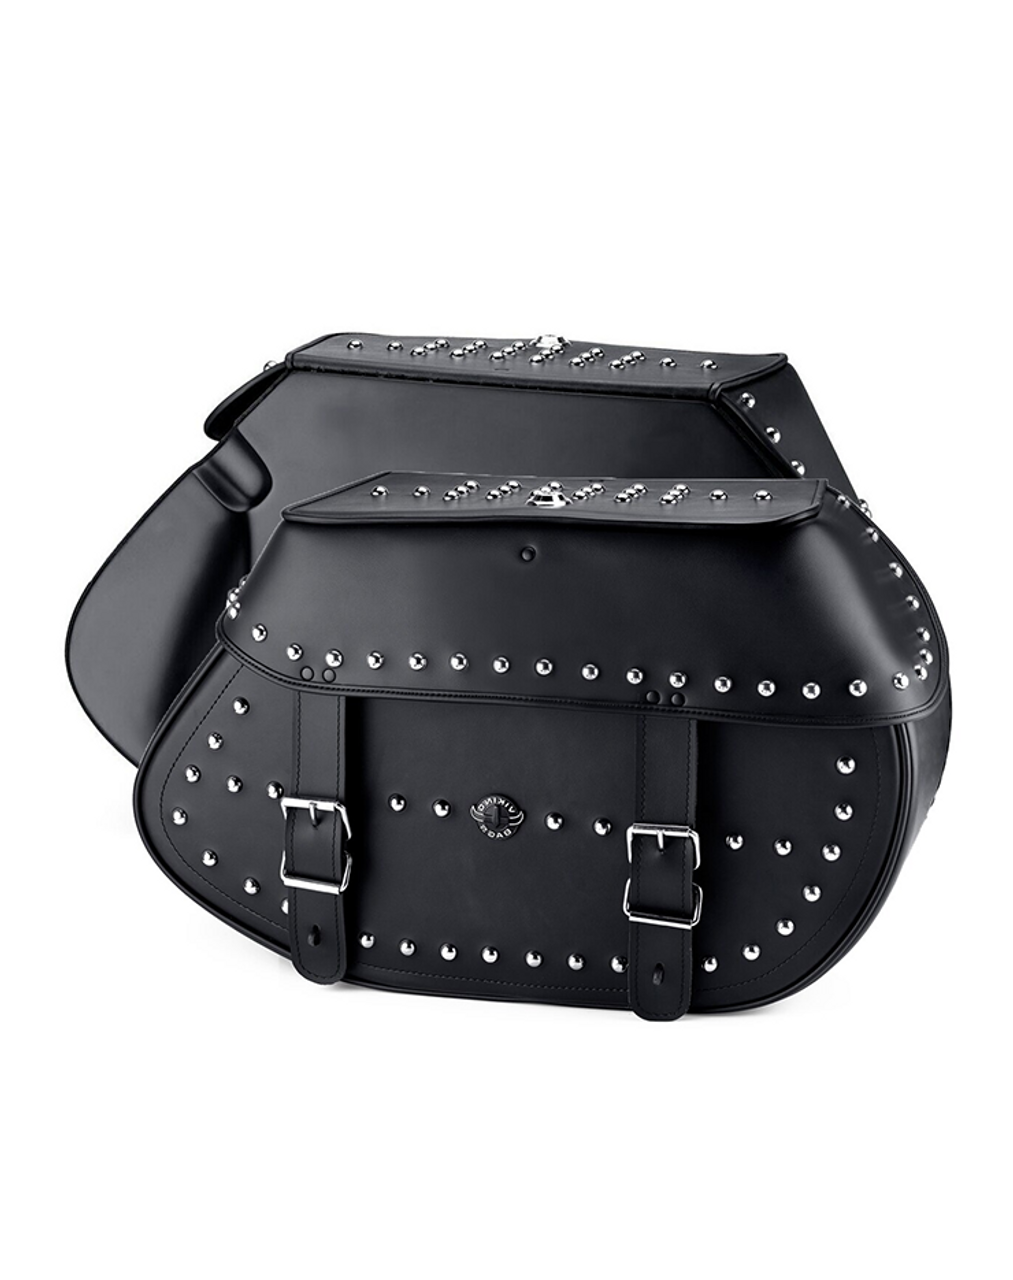 Viking Specific Studded Extra Large Saddlebags For Harley Softail Springer FXSTS Both Bags View